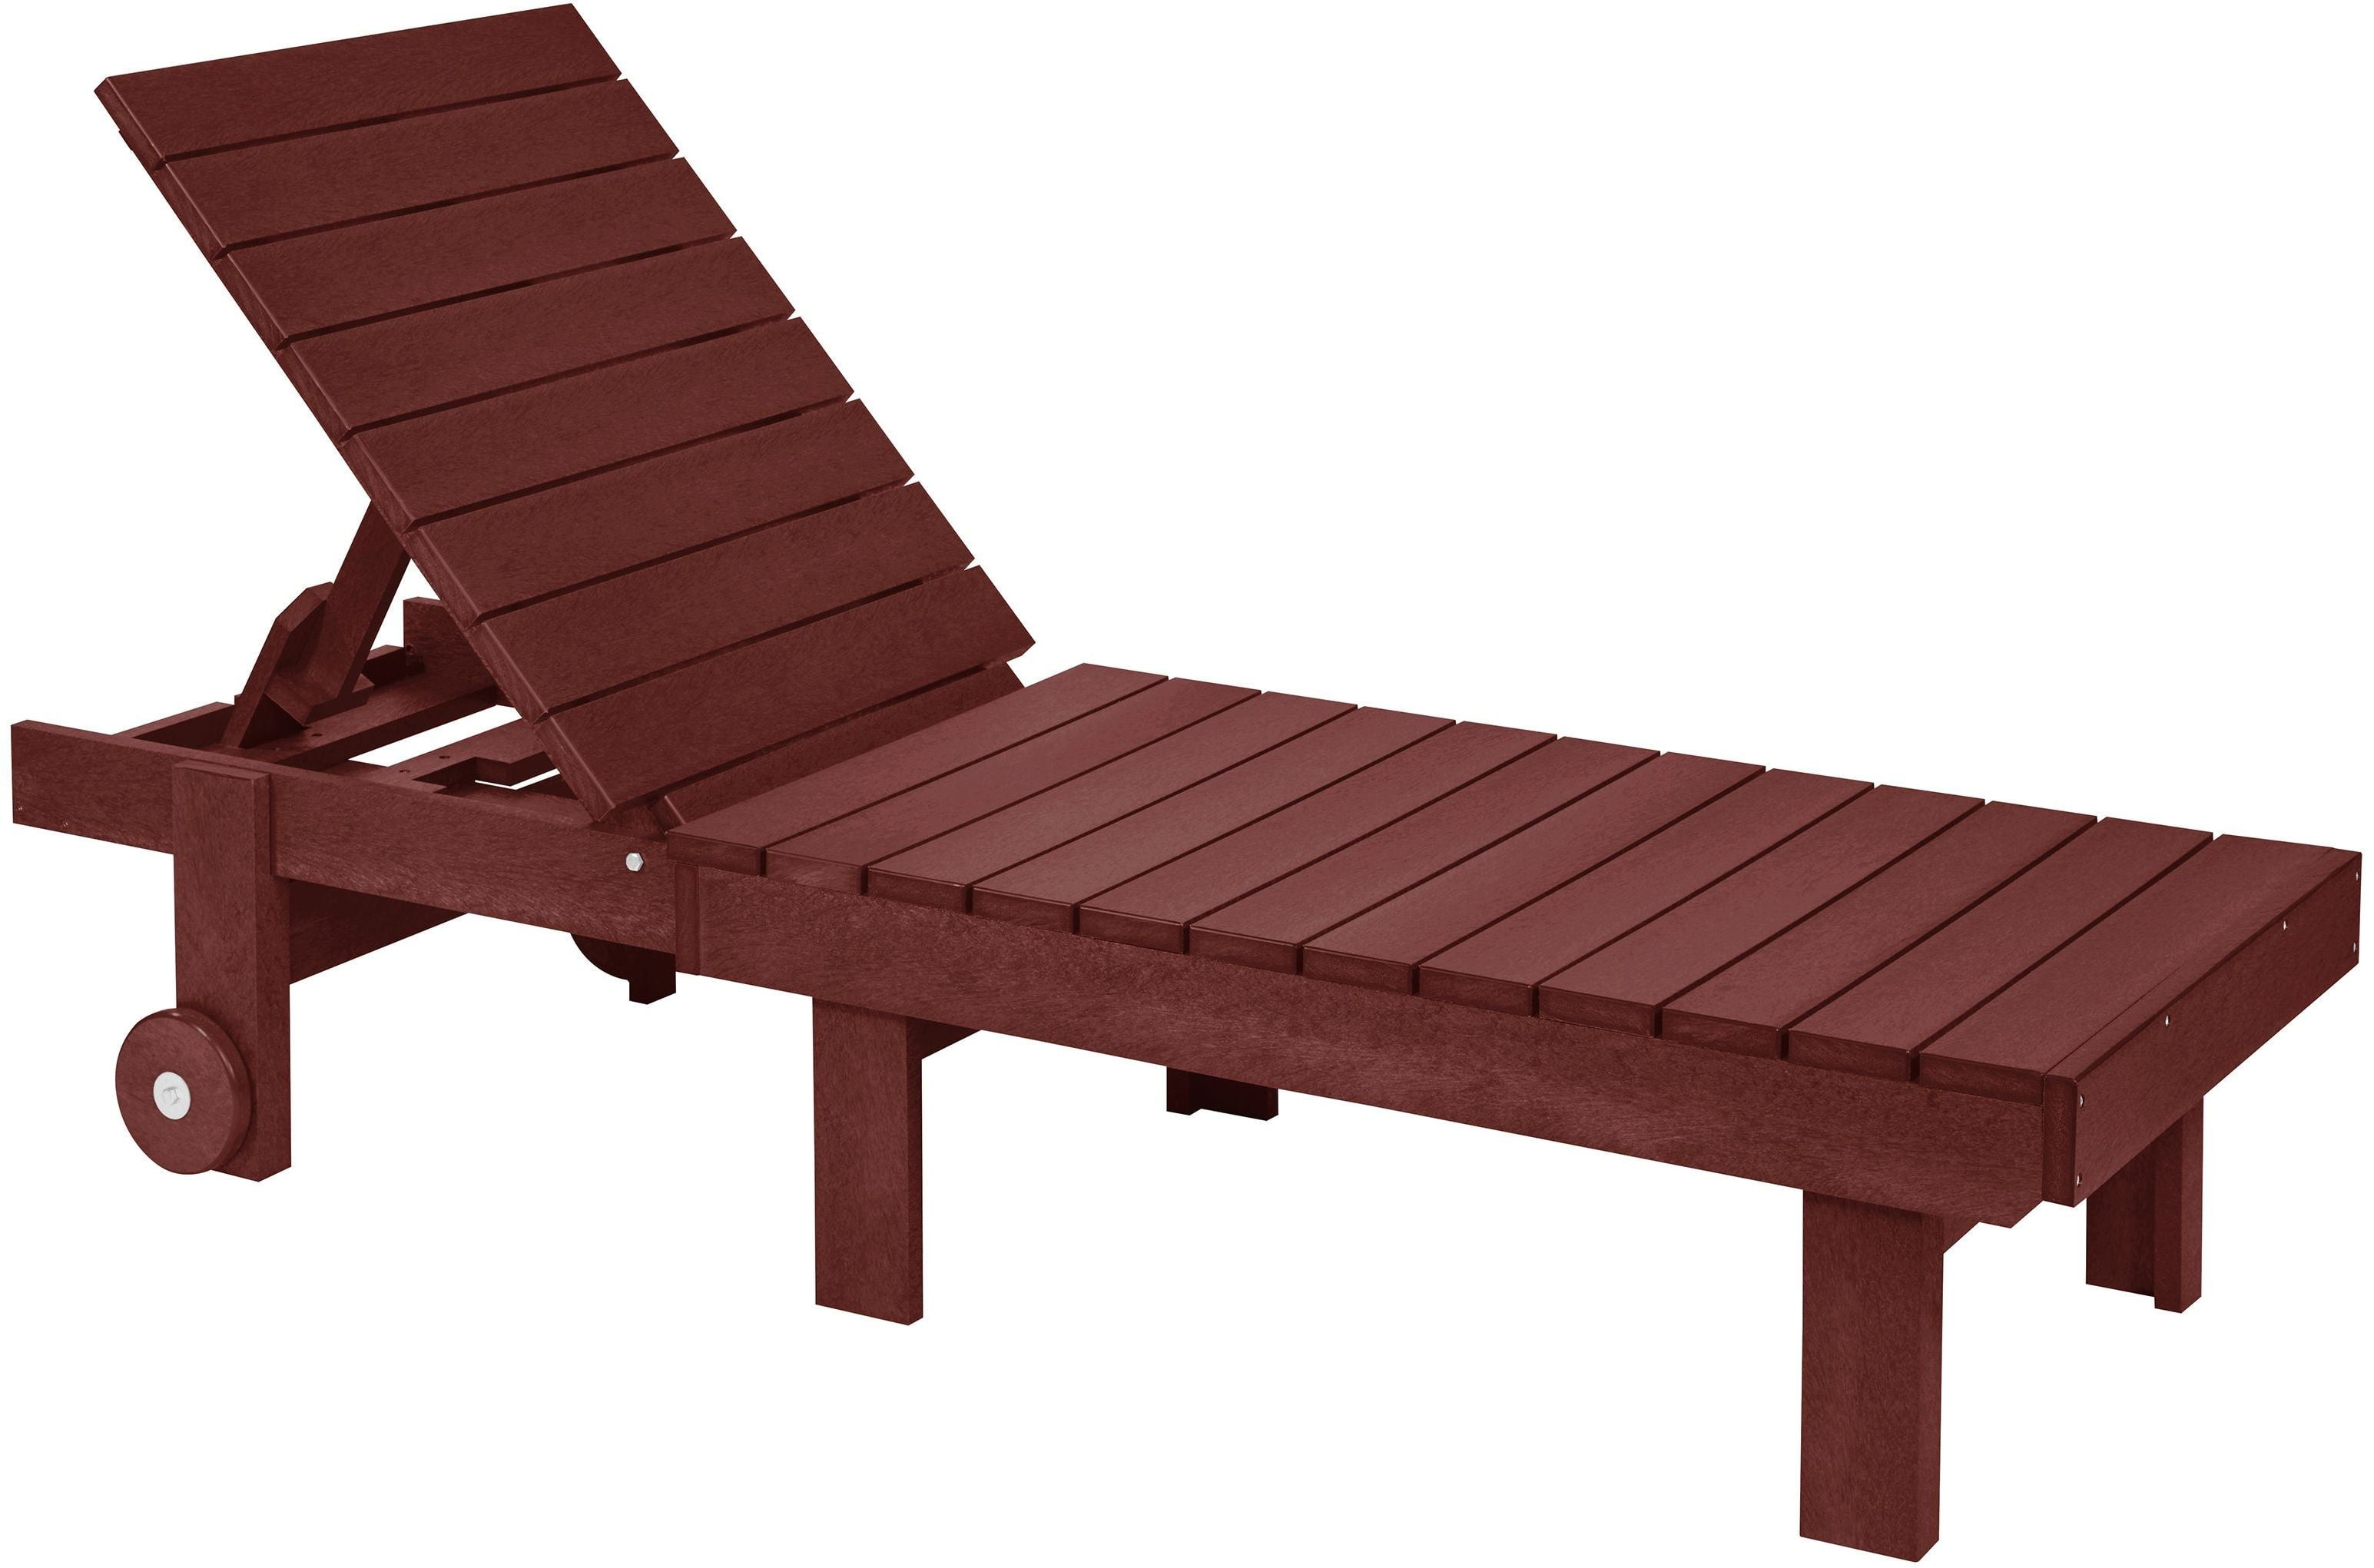 Generation burgundy chaise lounge with wheels from cr for Burgundy chaise lounge